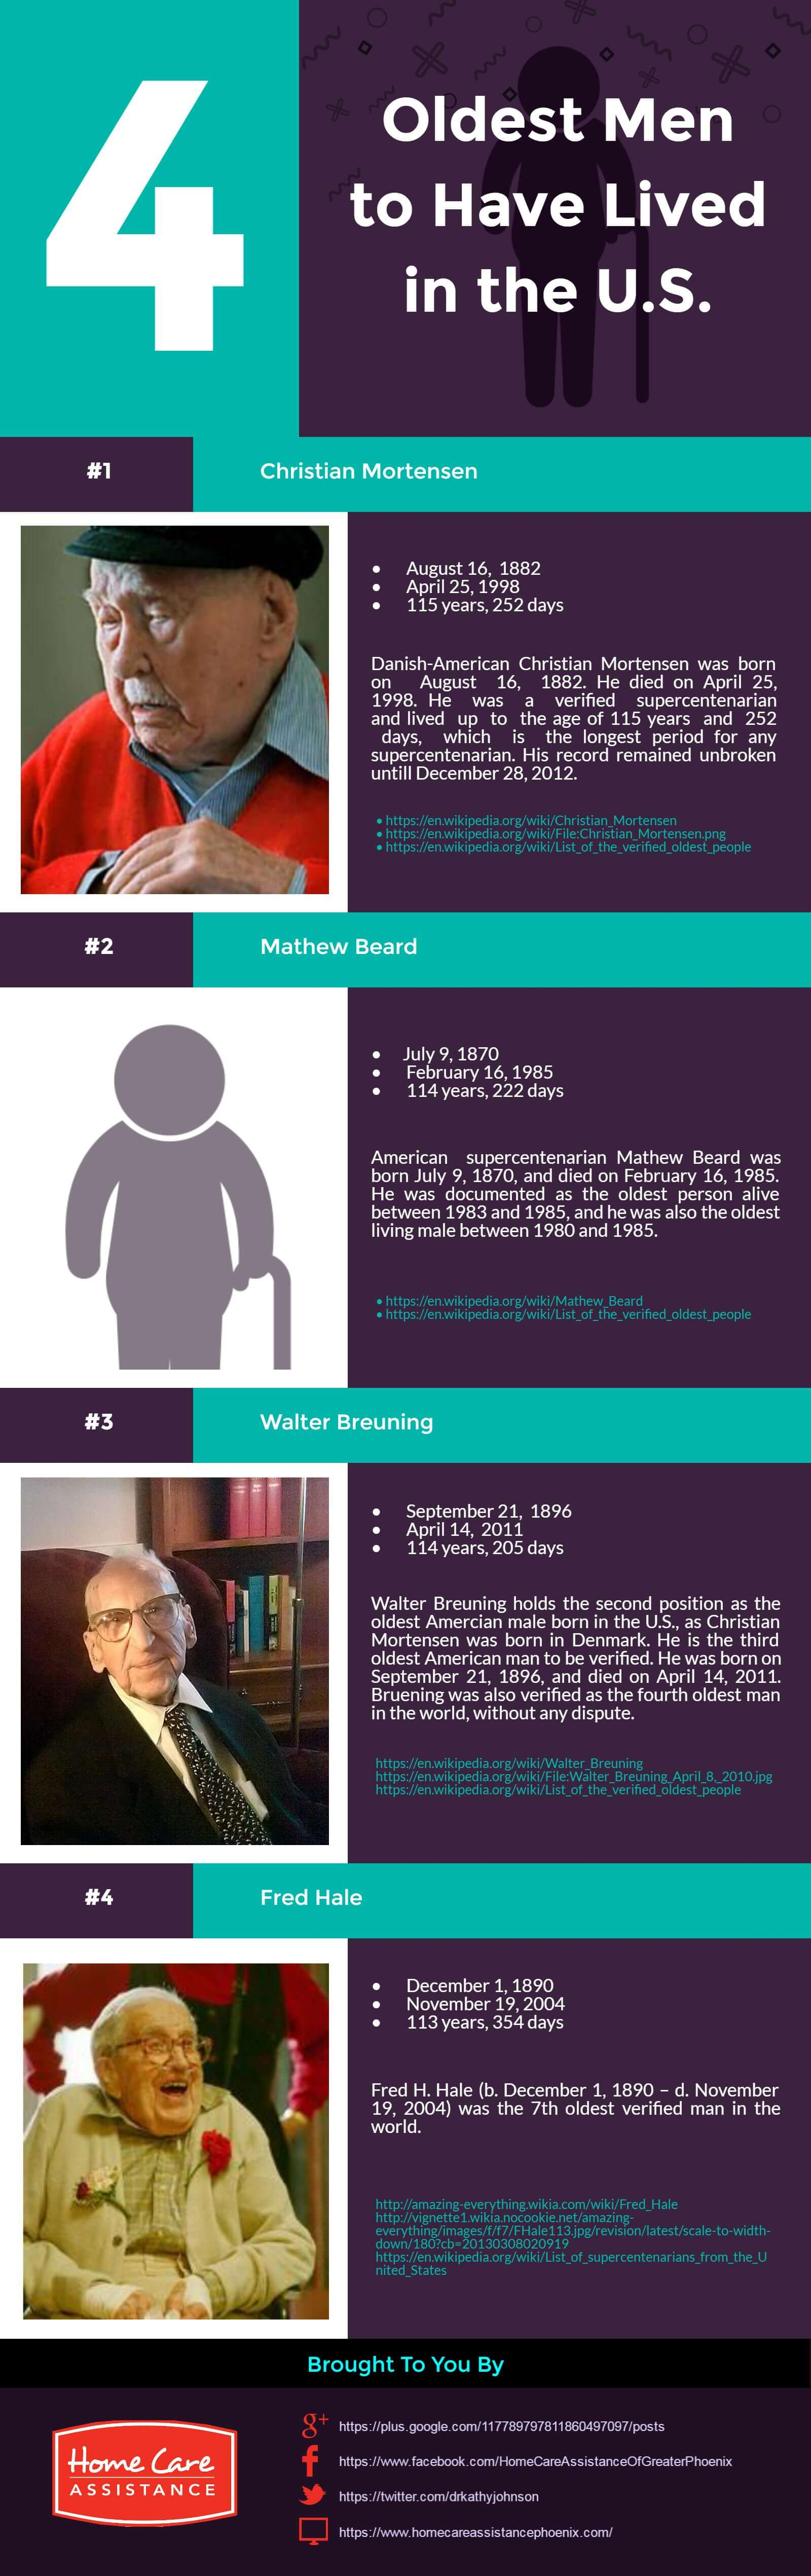 4-Oldest-Men-in-the-U.S.-infographic-plaza